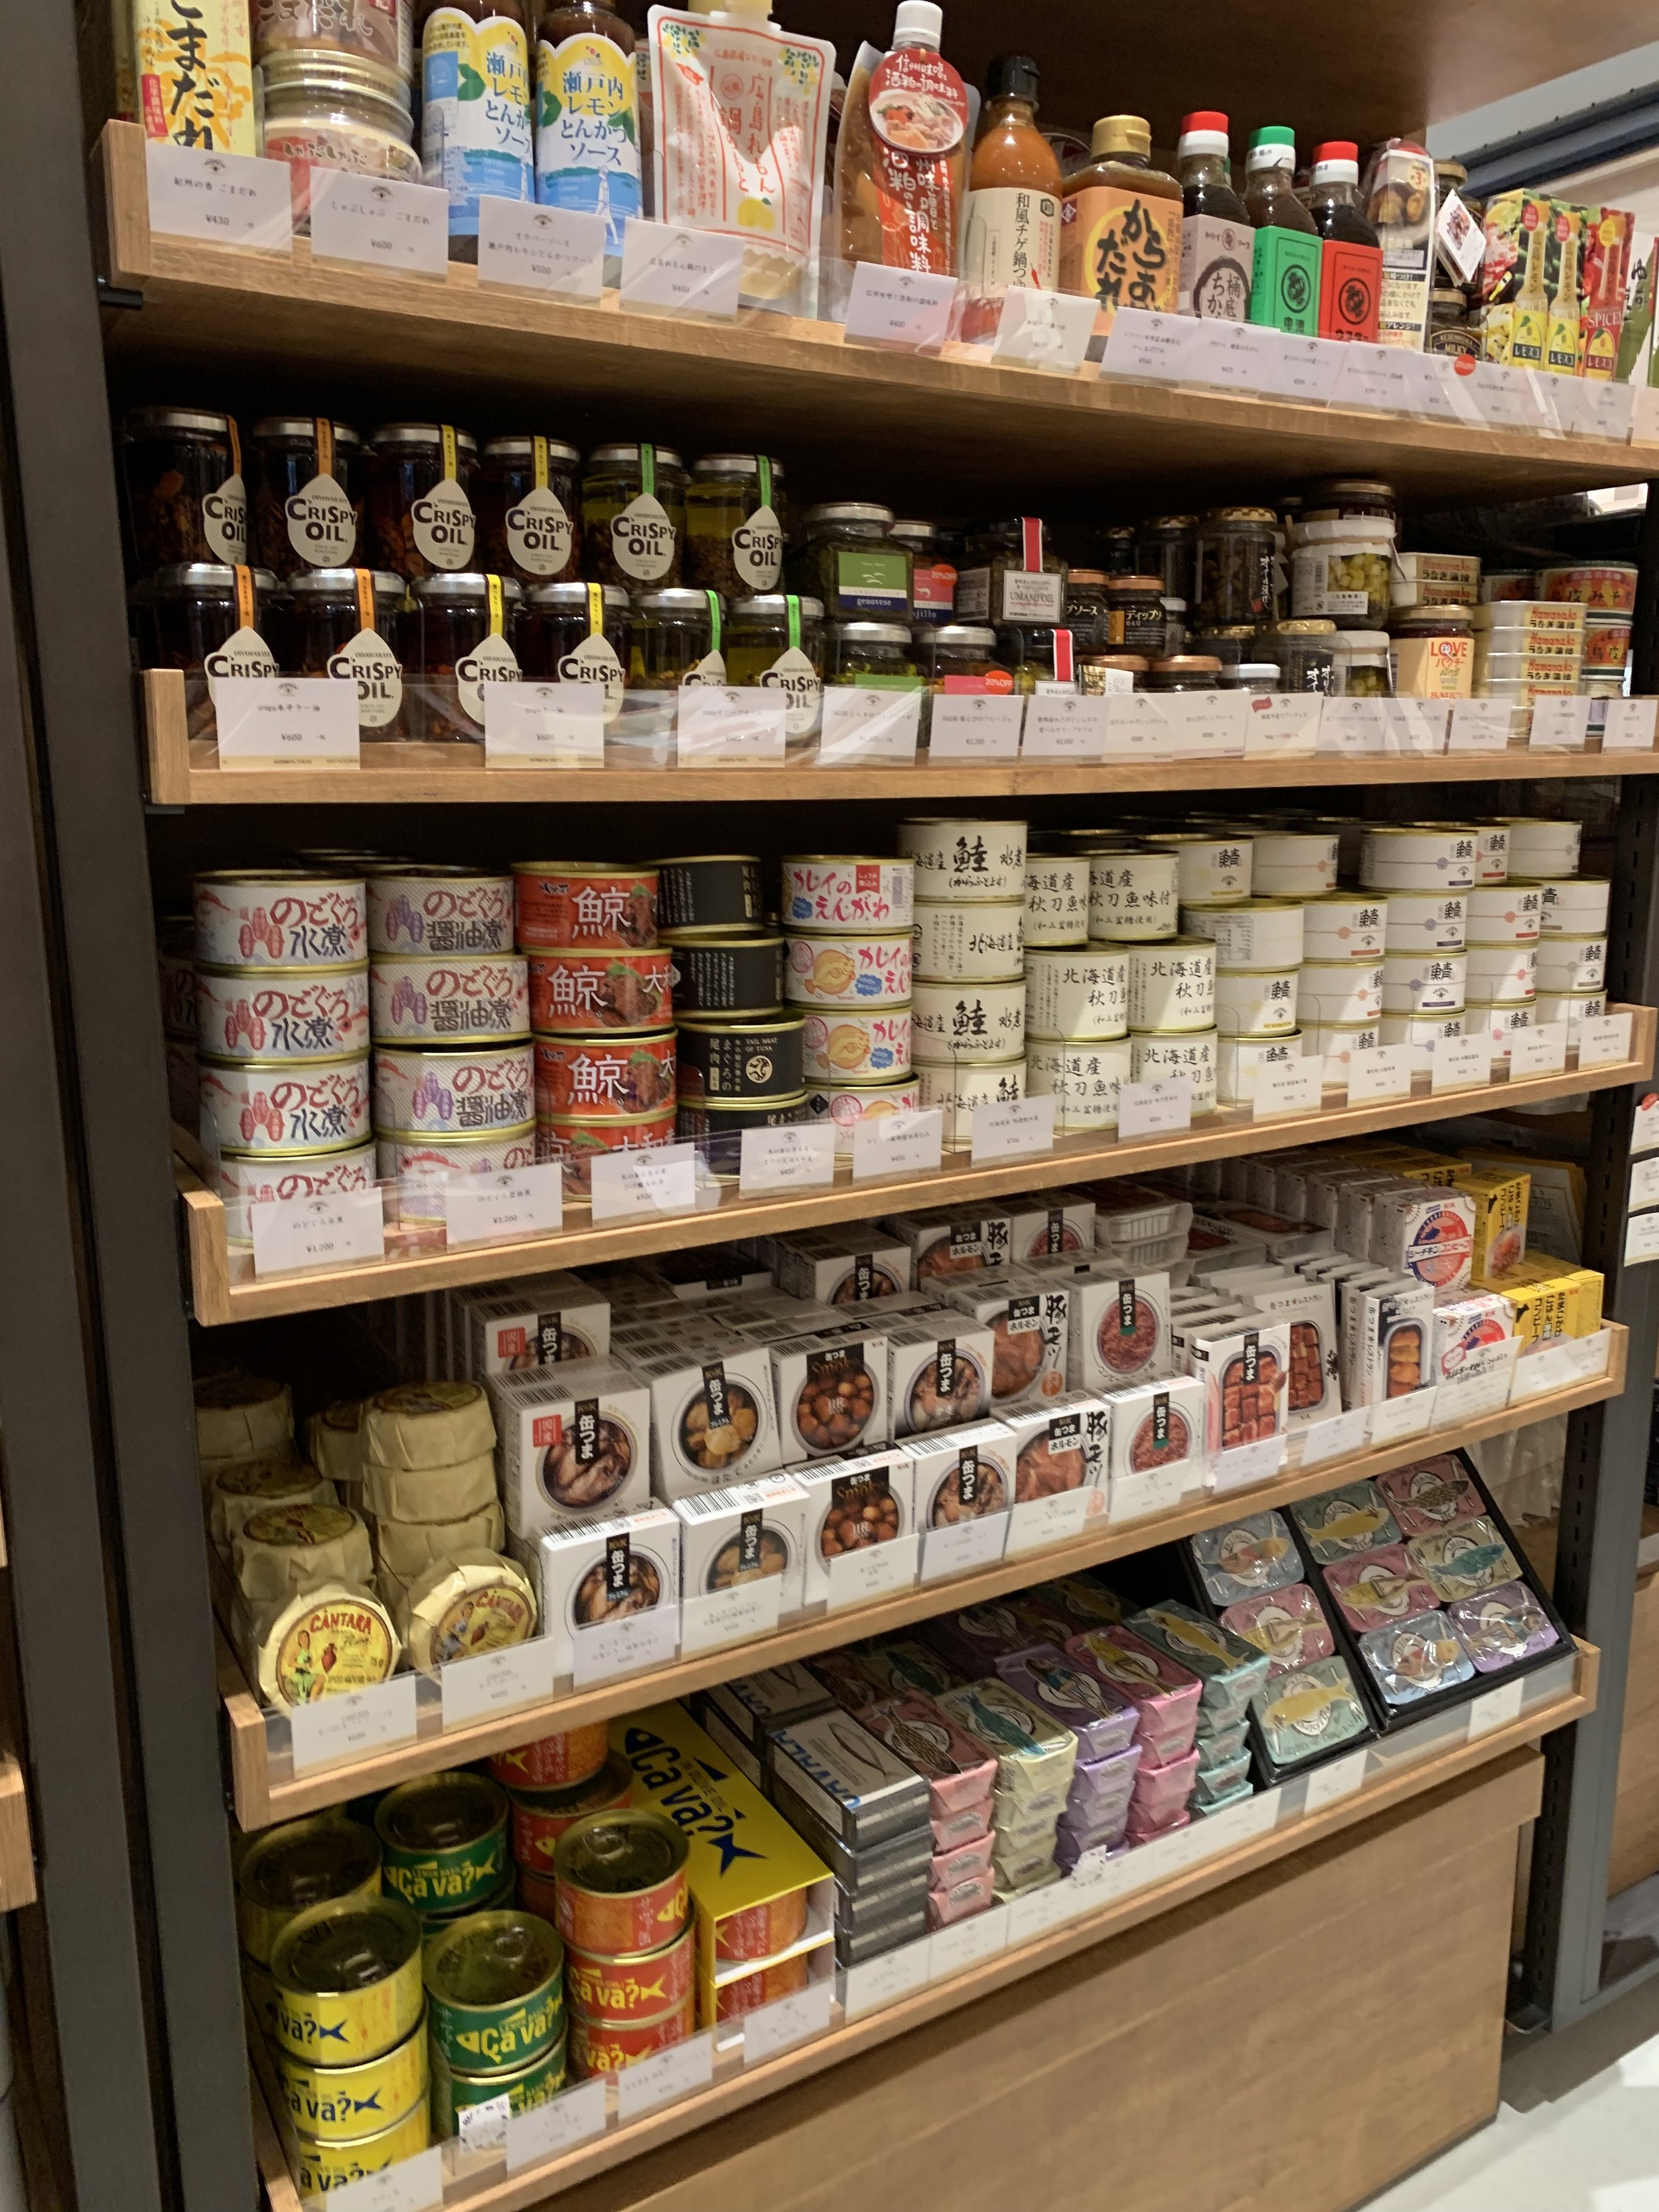 More beautiful looking canned fish and sauces